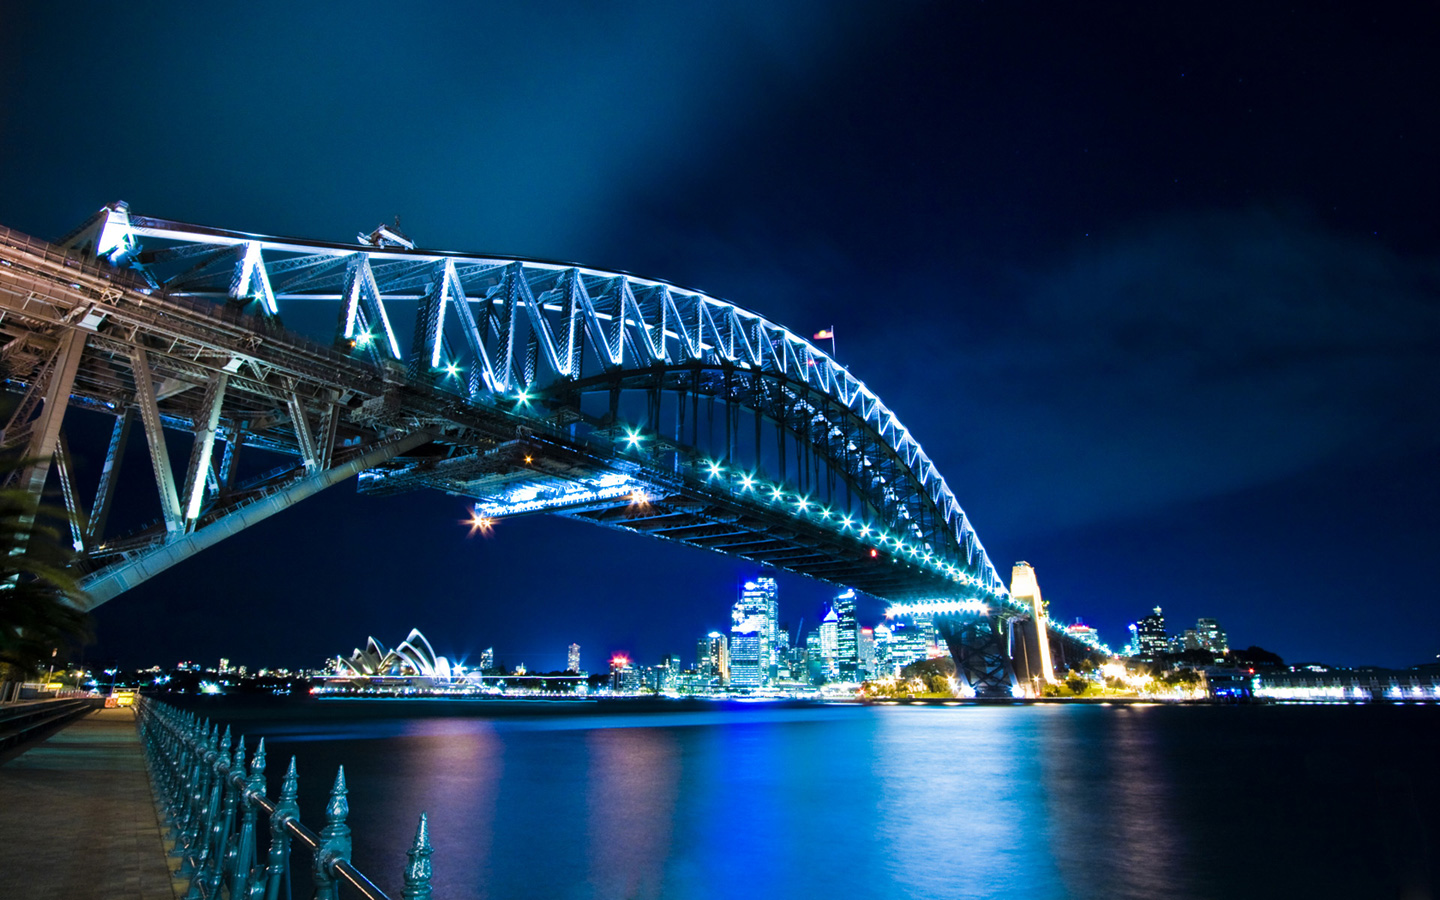 http://2.bp.blogspot.com/_14grgzfQGYA/TPcBbcbQWBI/AAAAAAAACWI/az1V1HPq9XI/s1600/sydney-harbour-bridge-hd-widescreen-wallpapers-10.jpeg